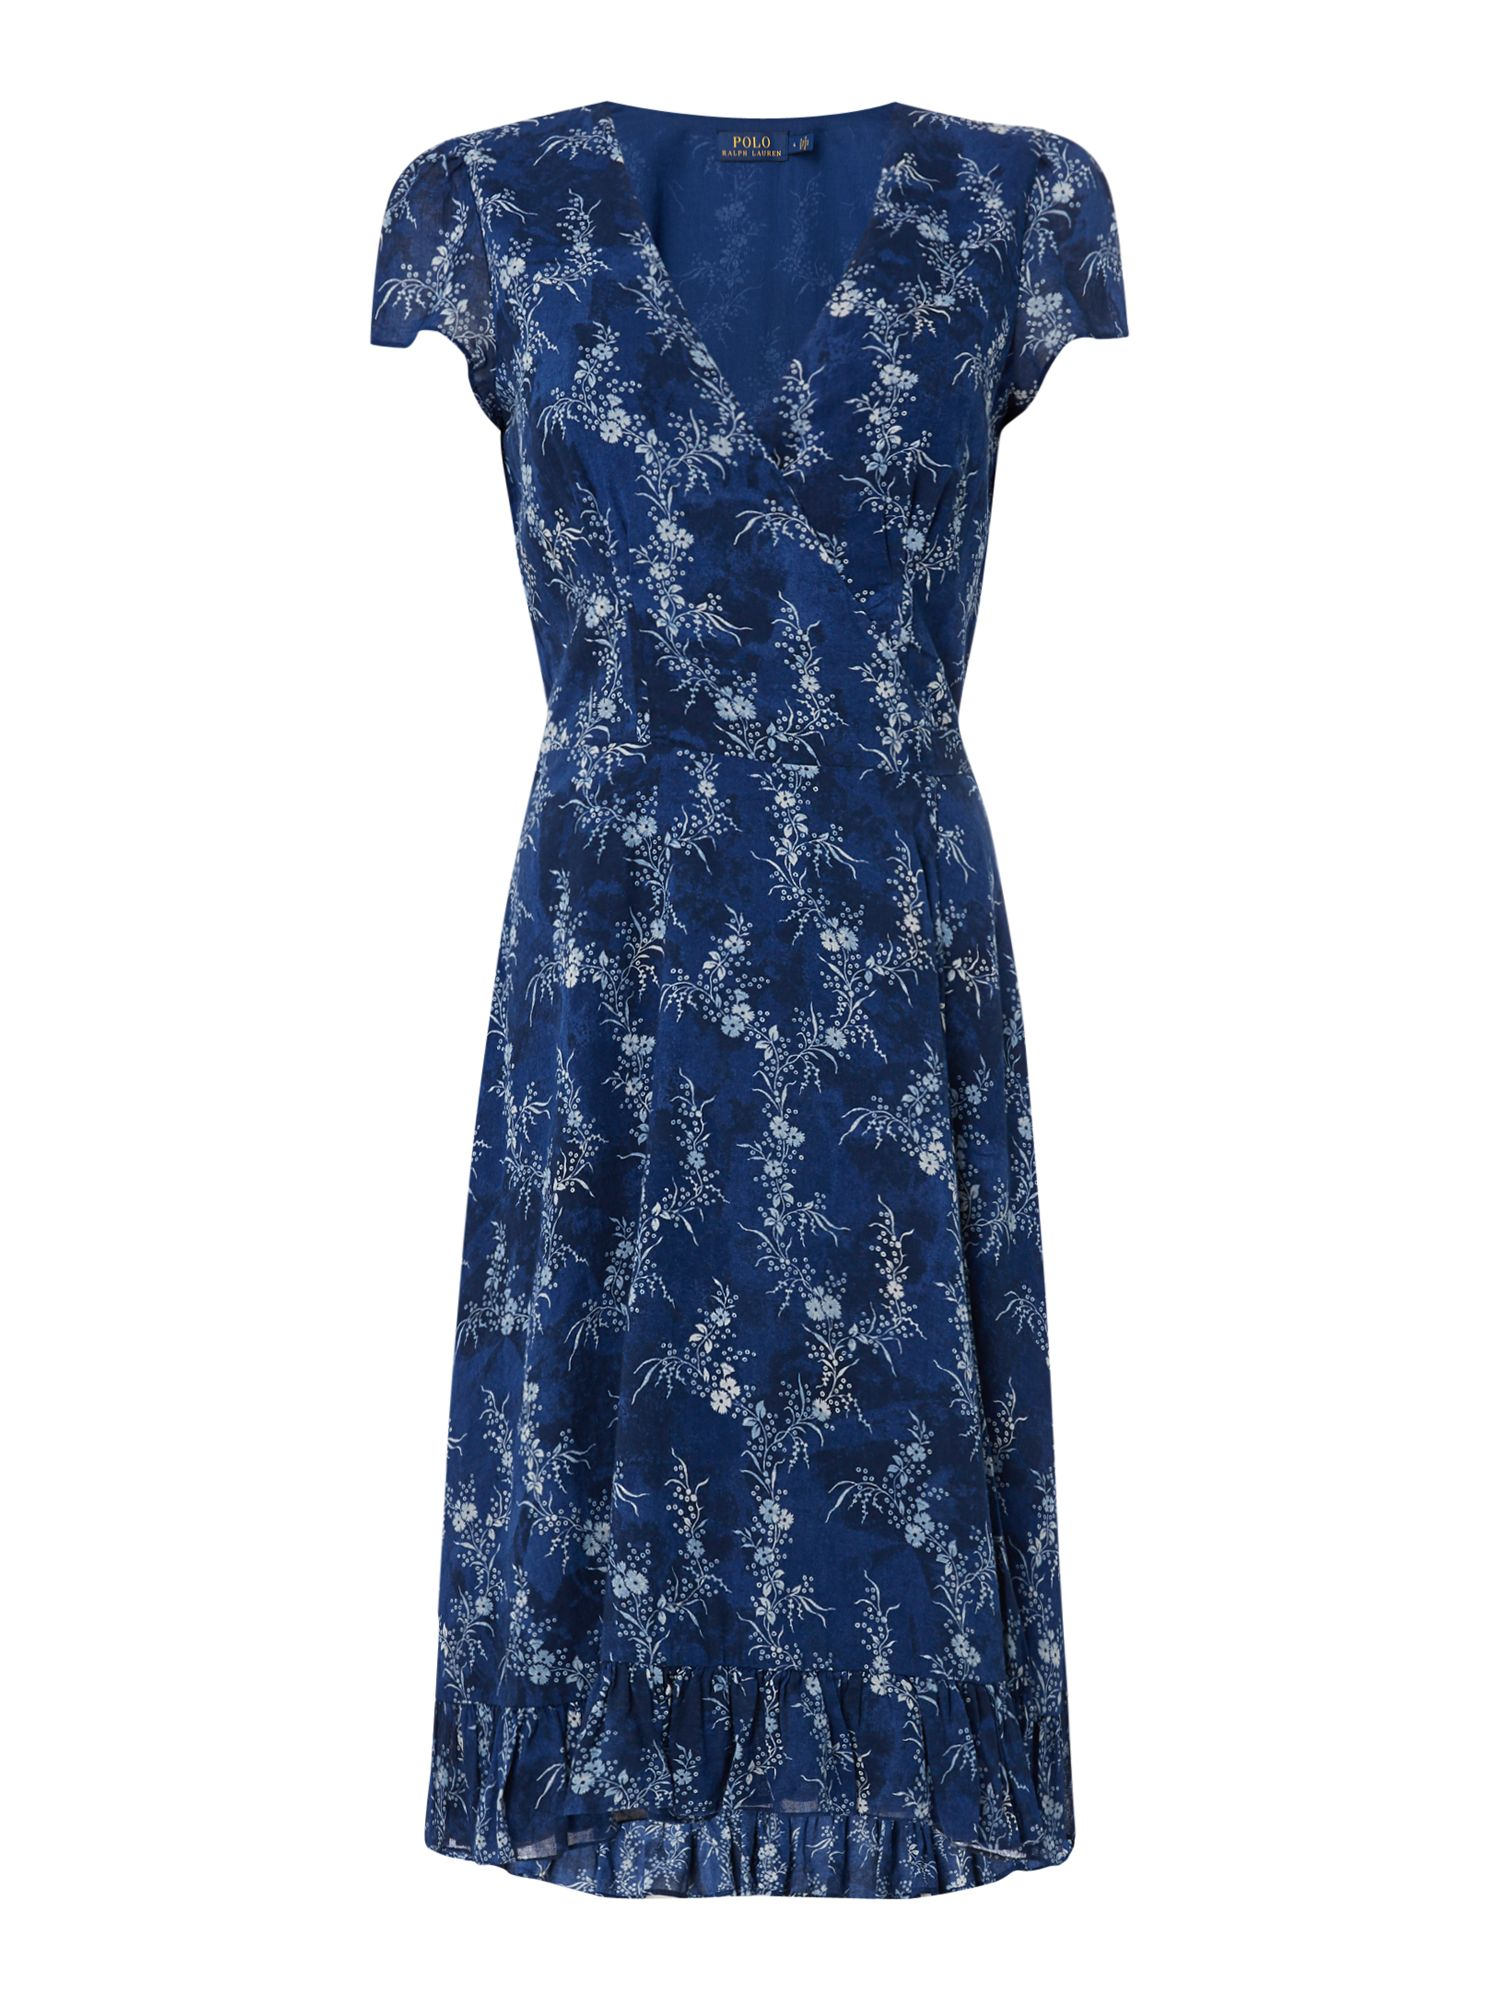 Polo Ralph Lauren Printed Dress with Tie Waist ...